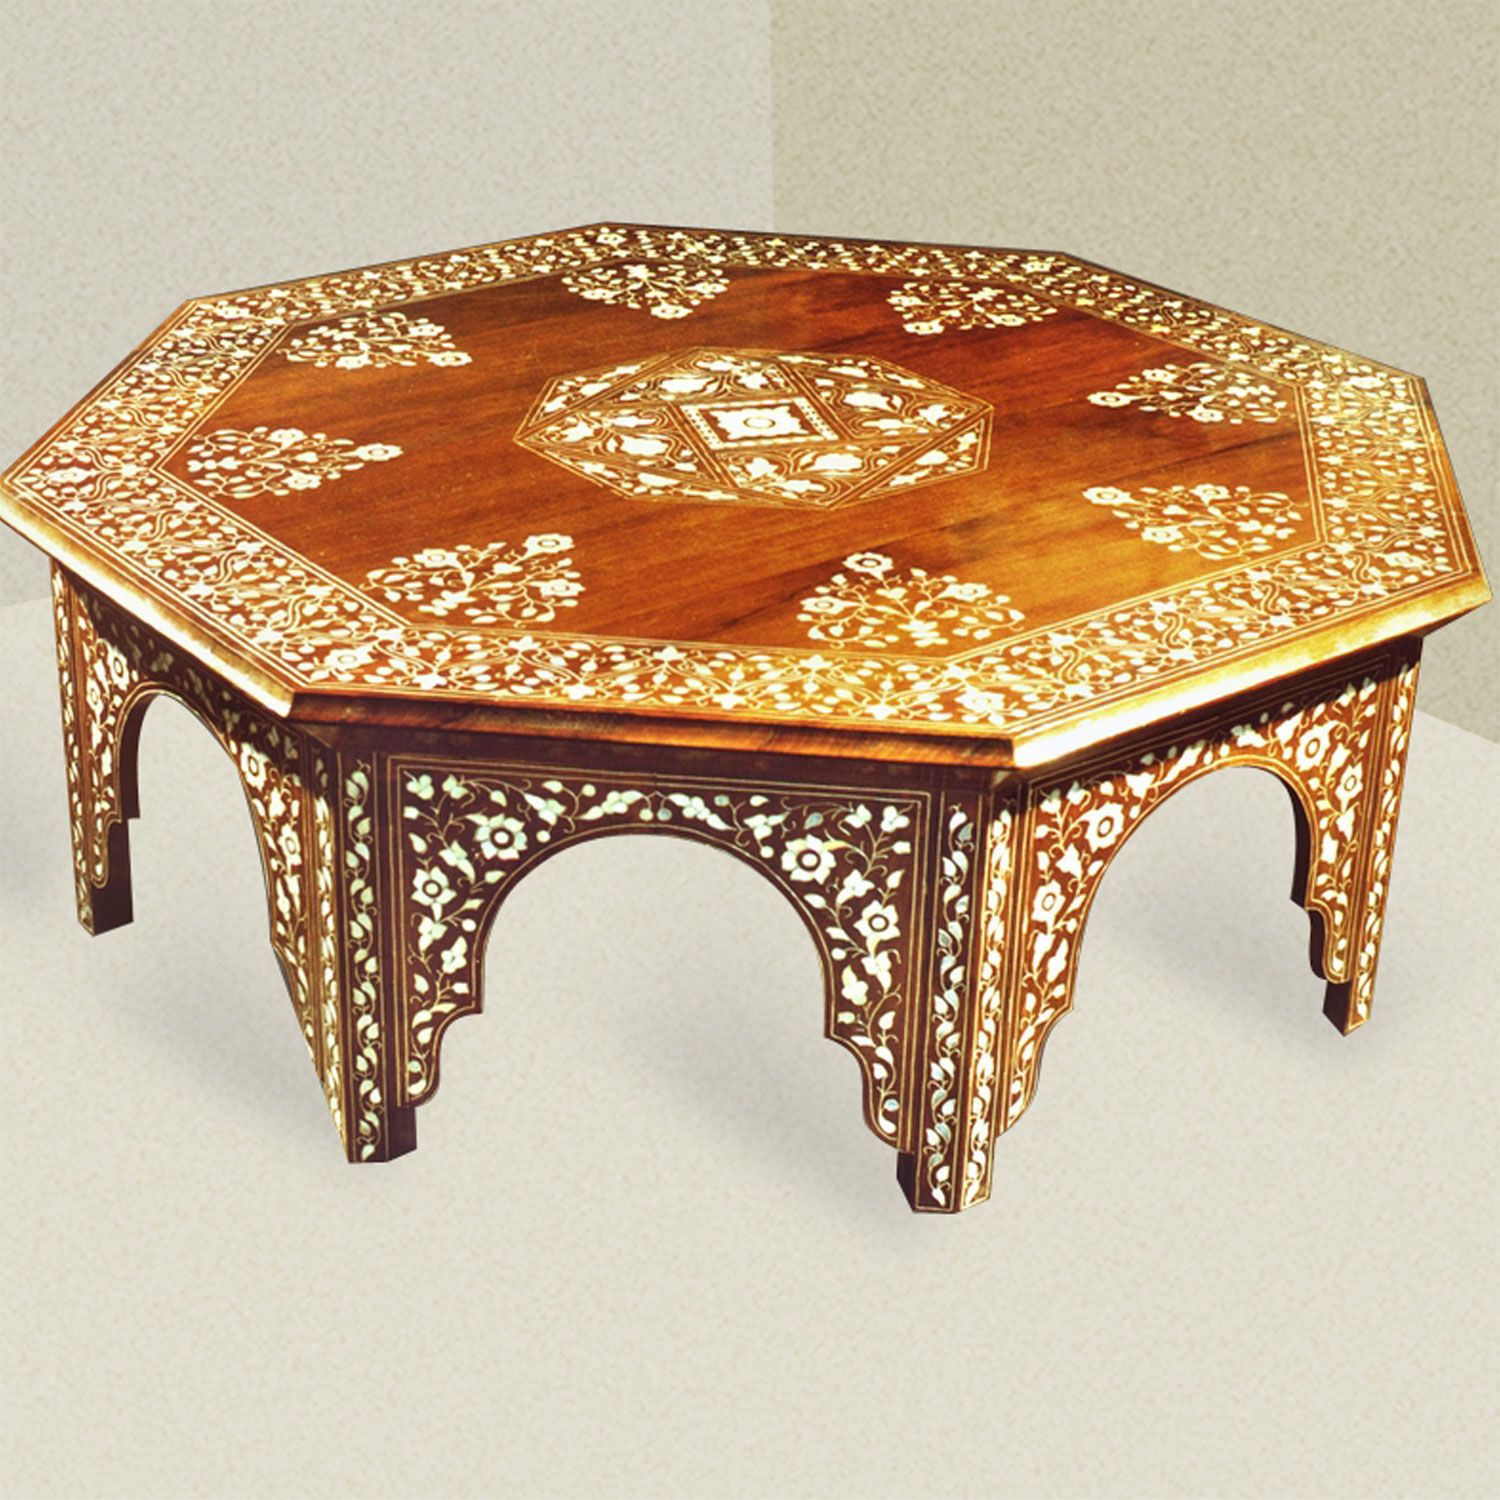 Moroccan Table Lighting Syrian Moroccan coffee table inlaid